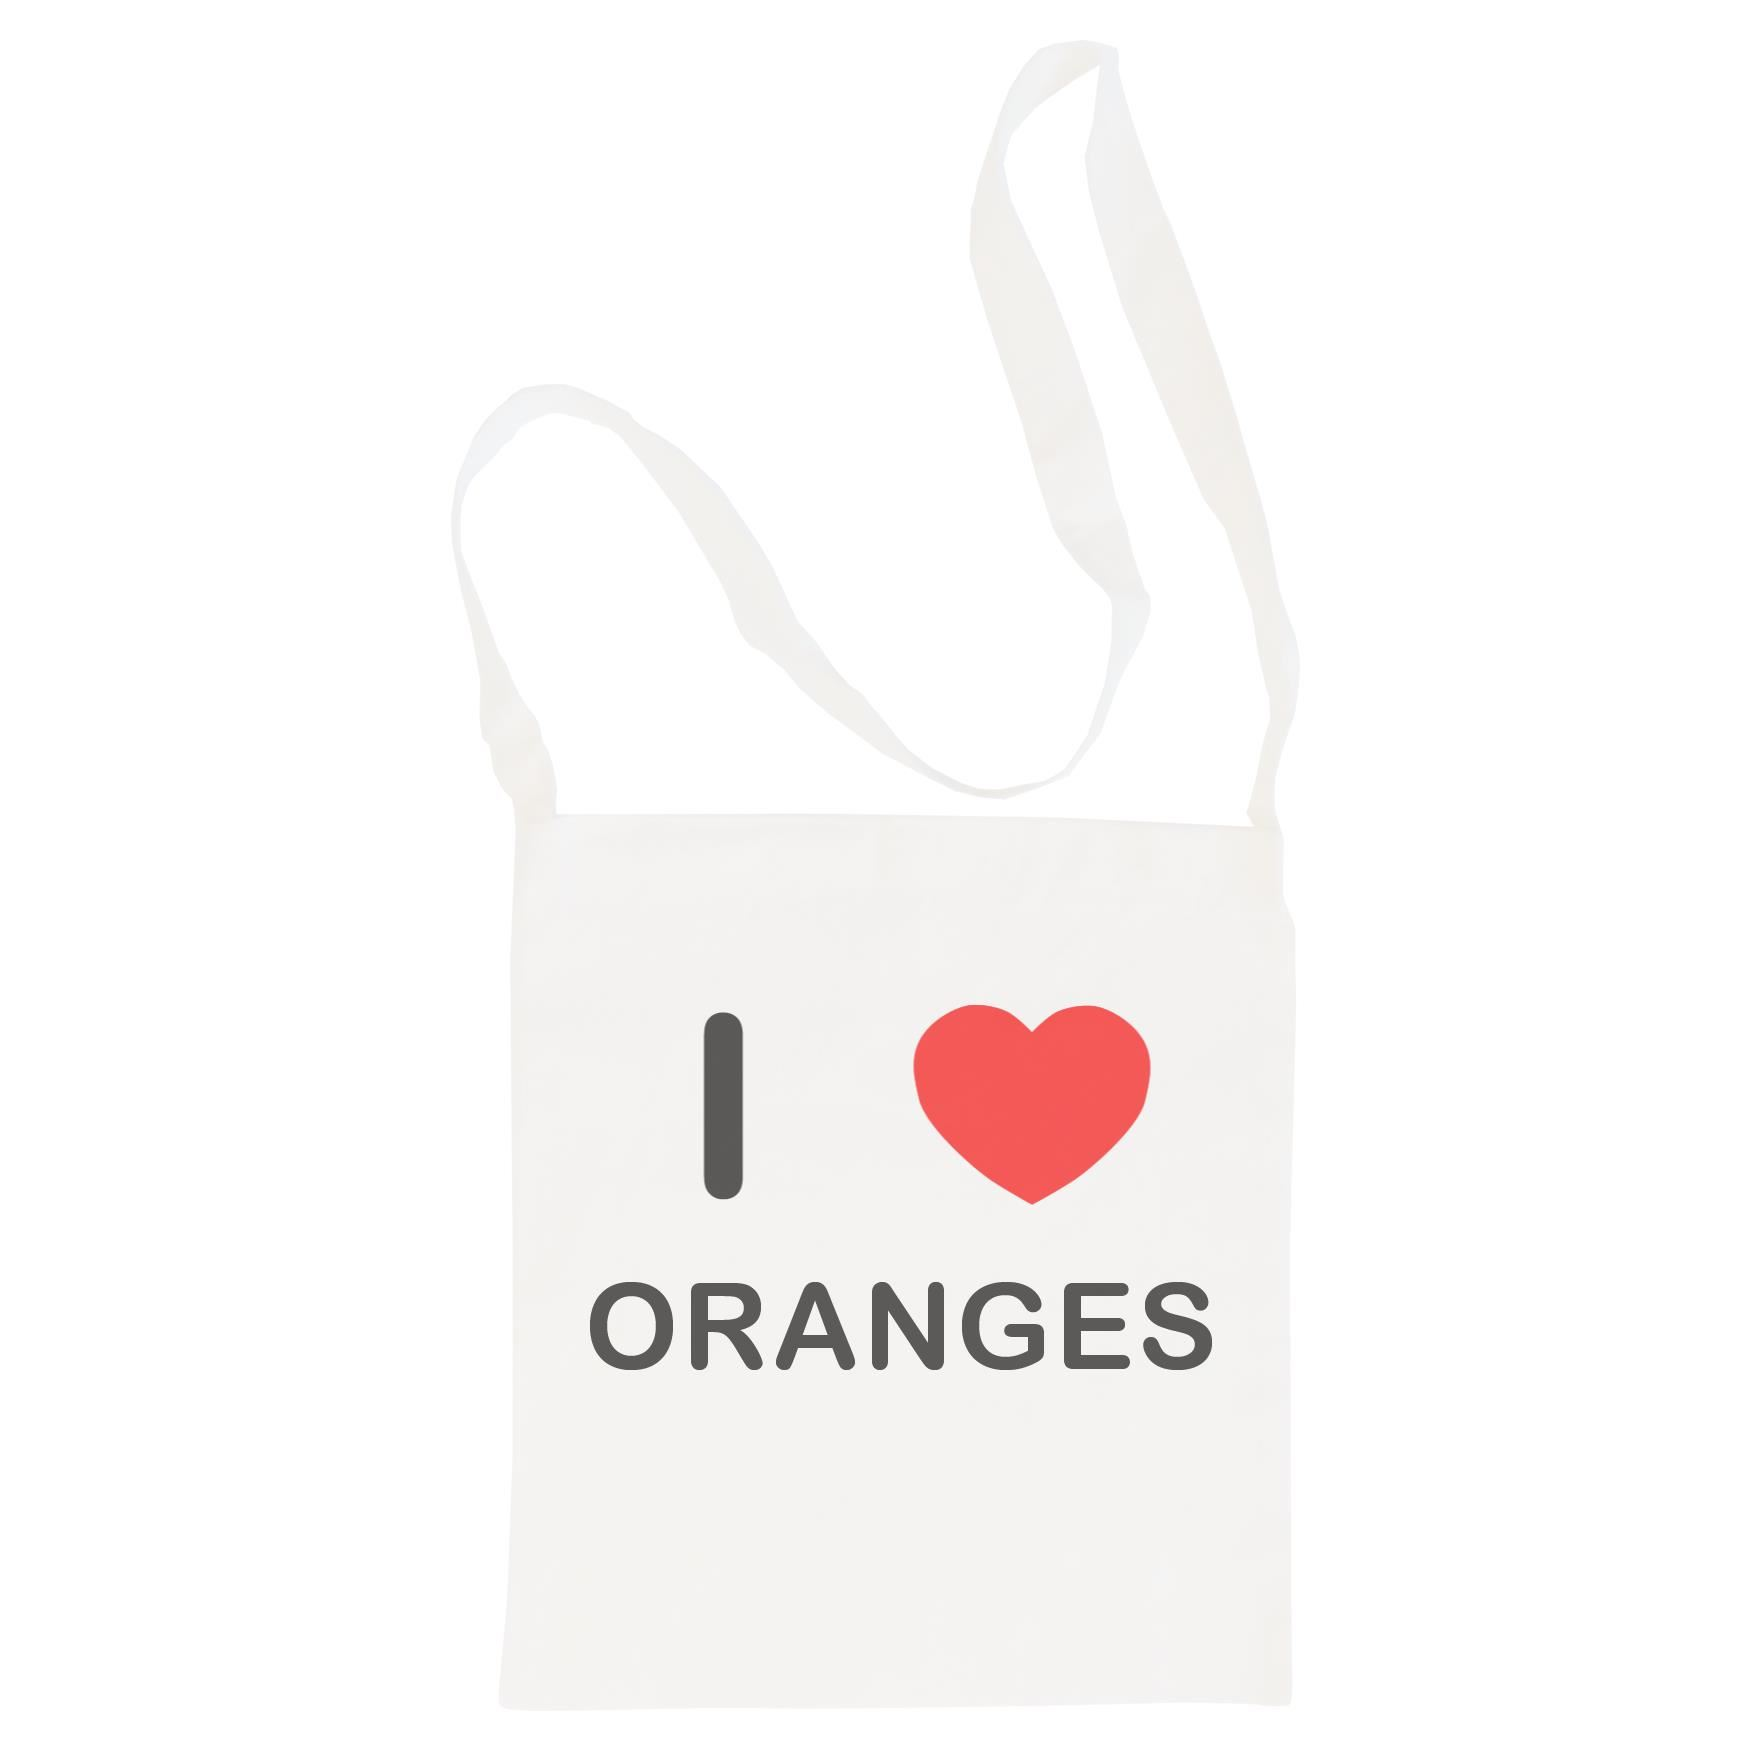 I Love Oranges - Cotton Bag | Size choice Tote, Shopper or Sling